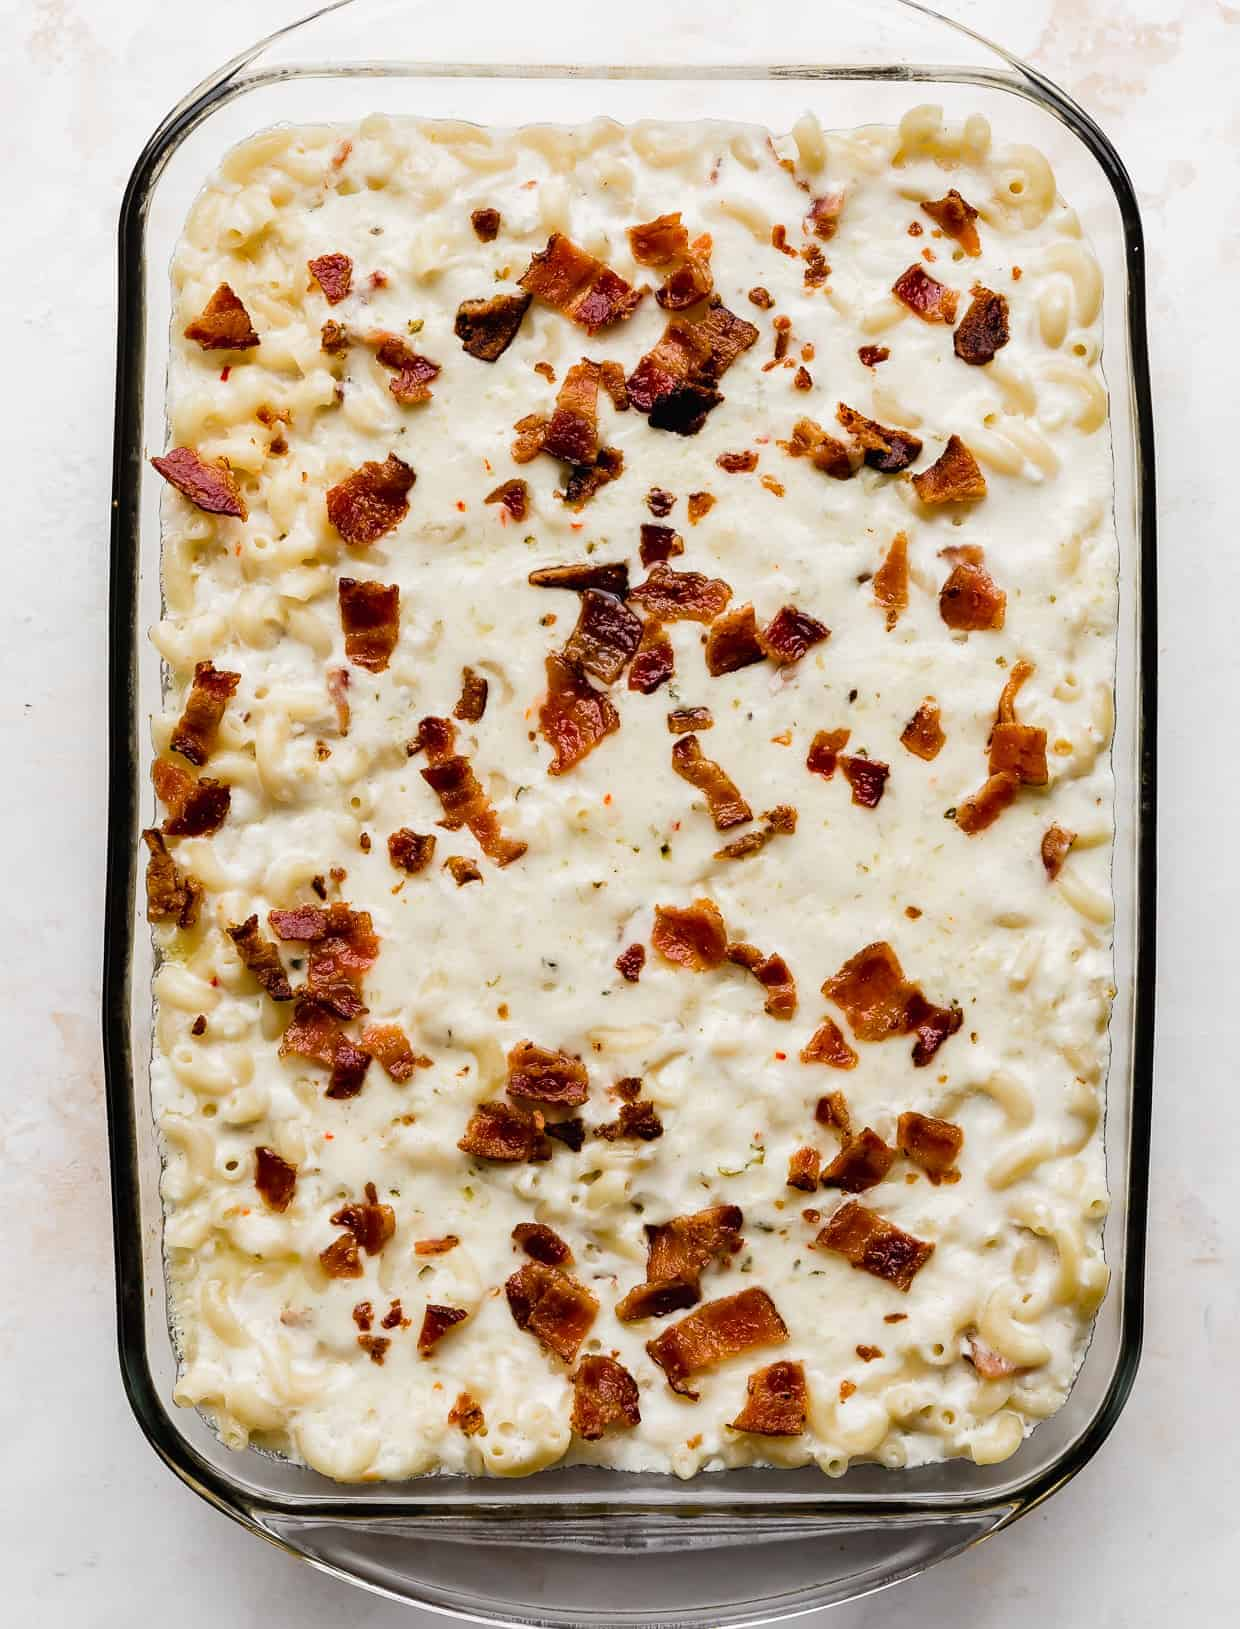 Freshly baked Bacon Pepper Jack Mac and Cheese in a casserole dish against a white background.